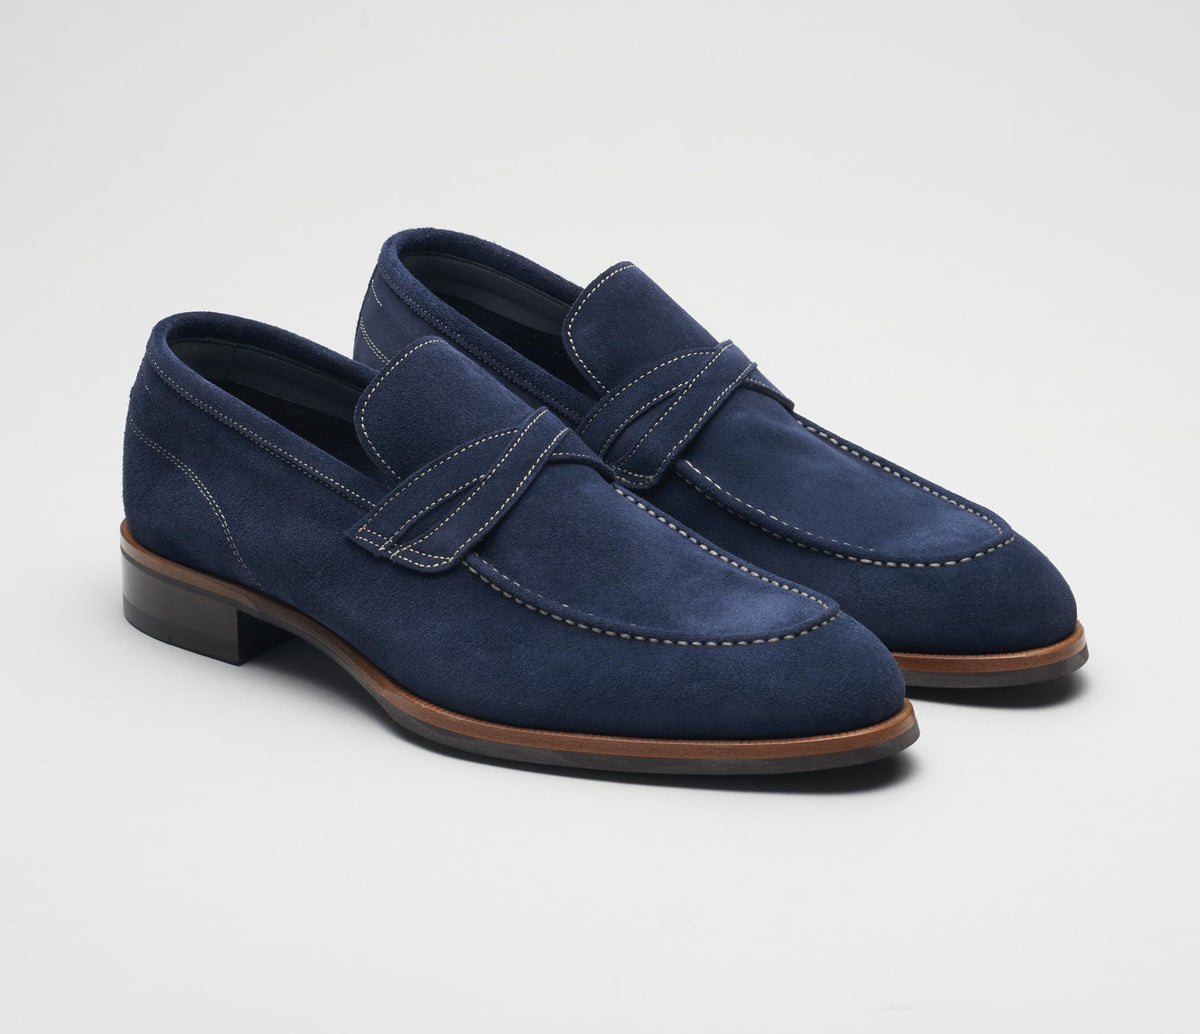 Men's italian shoes, men's suede loafer blue